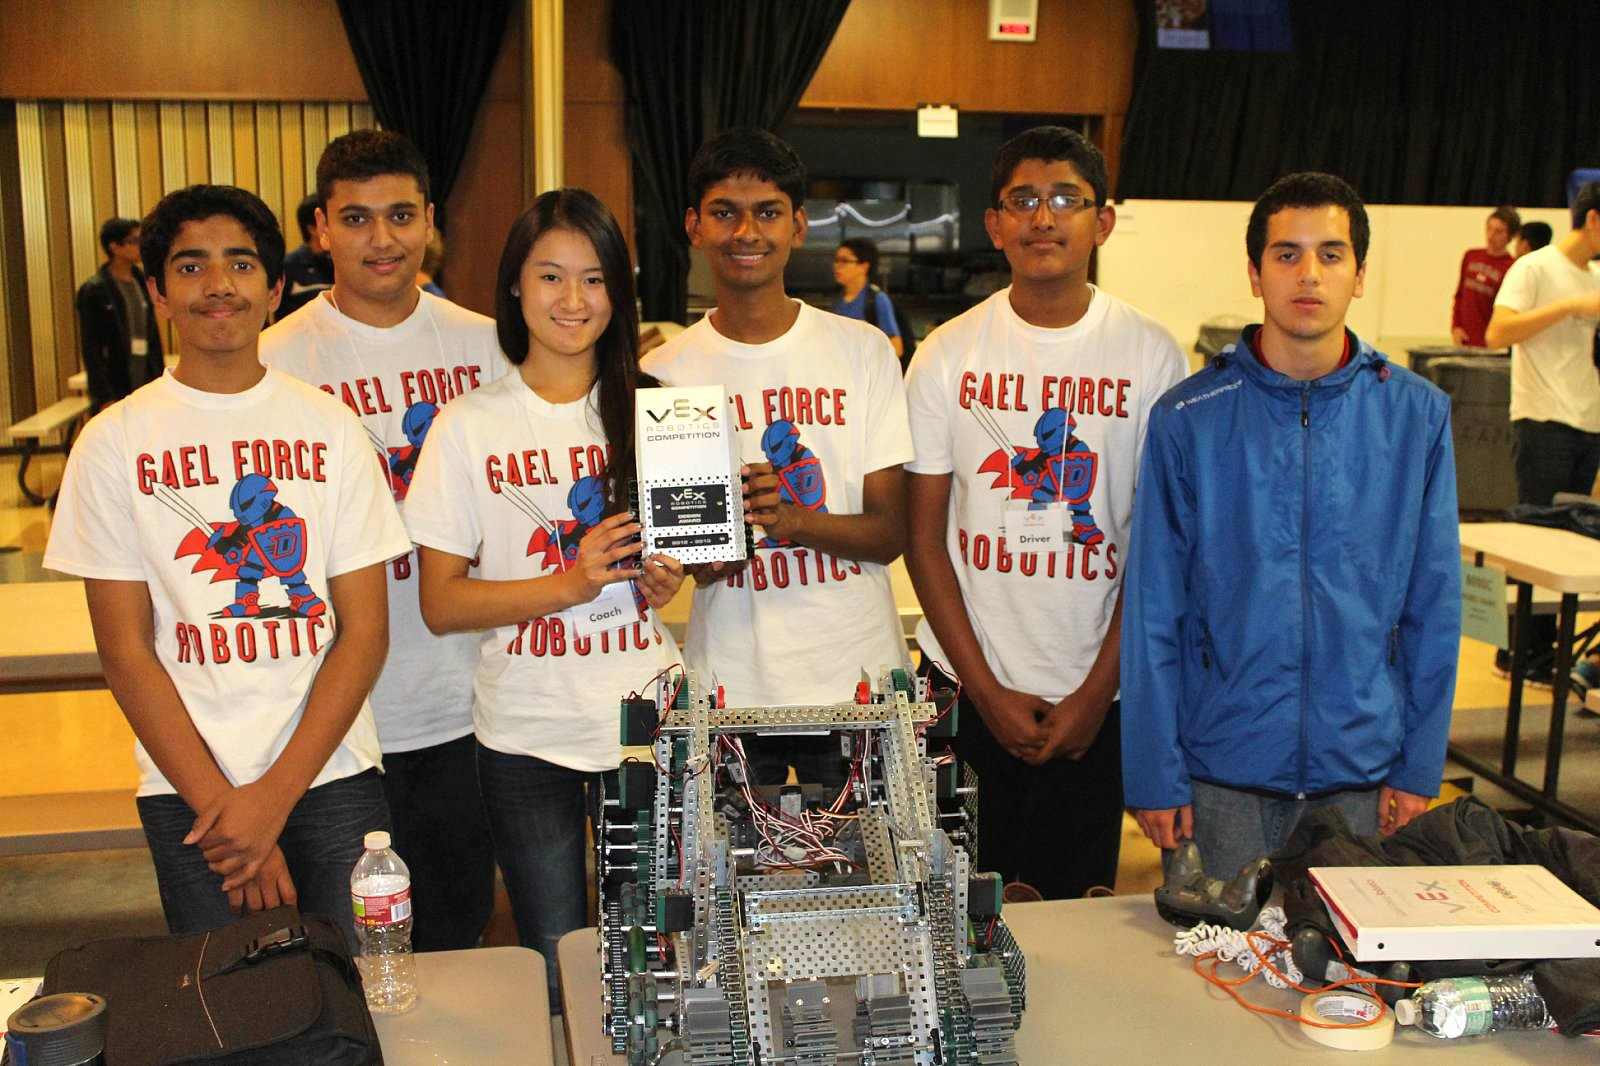 Dublin High School Robotics Team Win Qualifies For 2013 Vex World